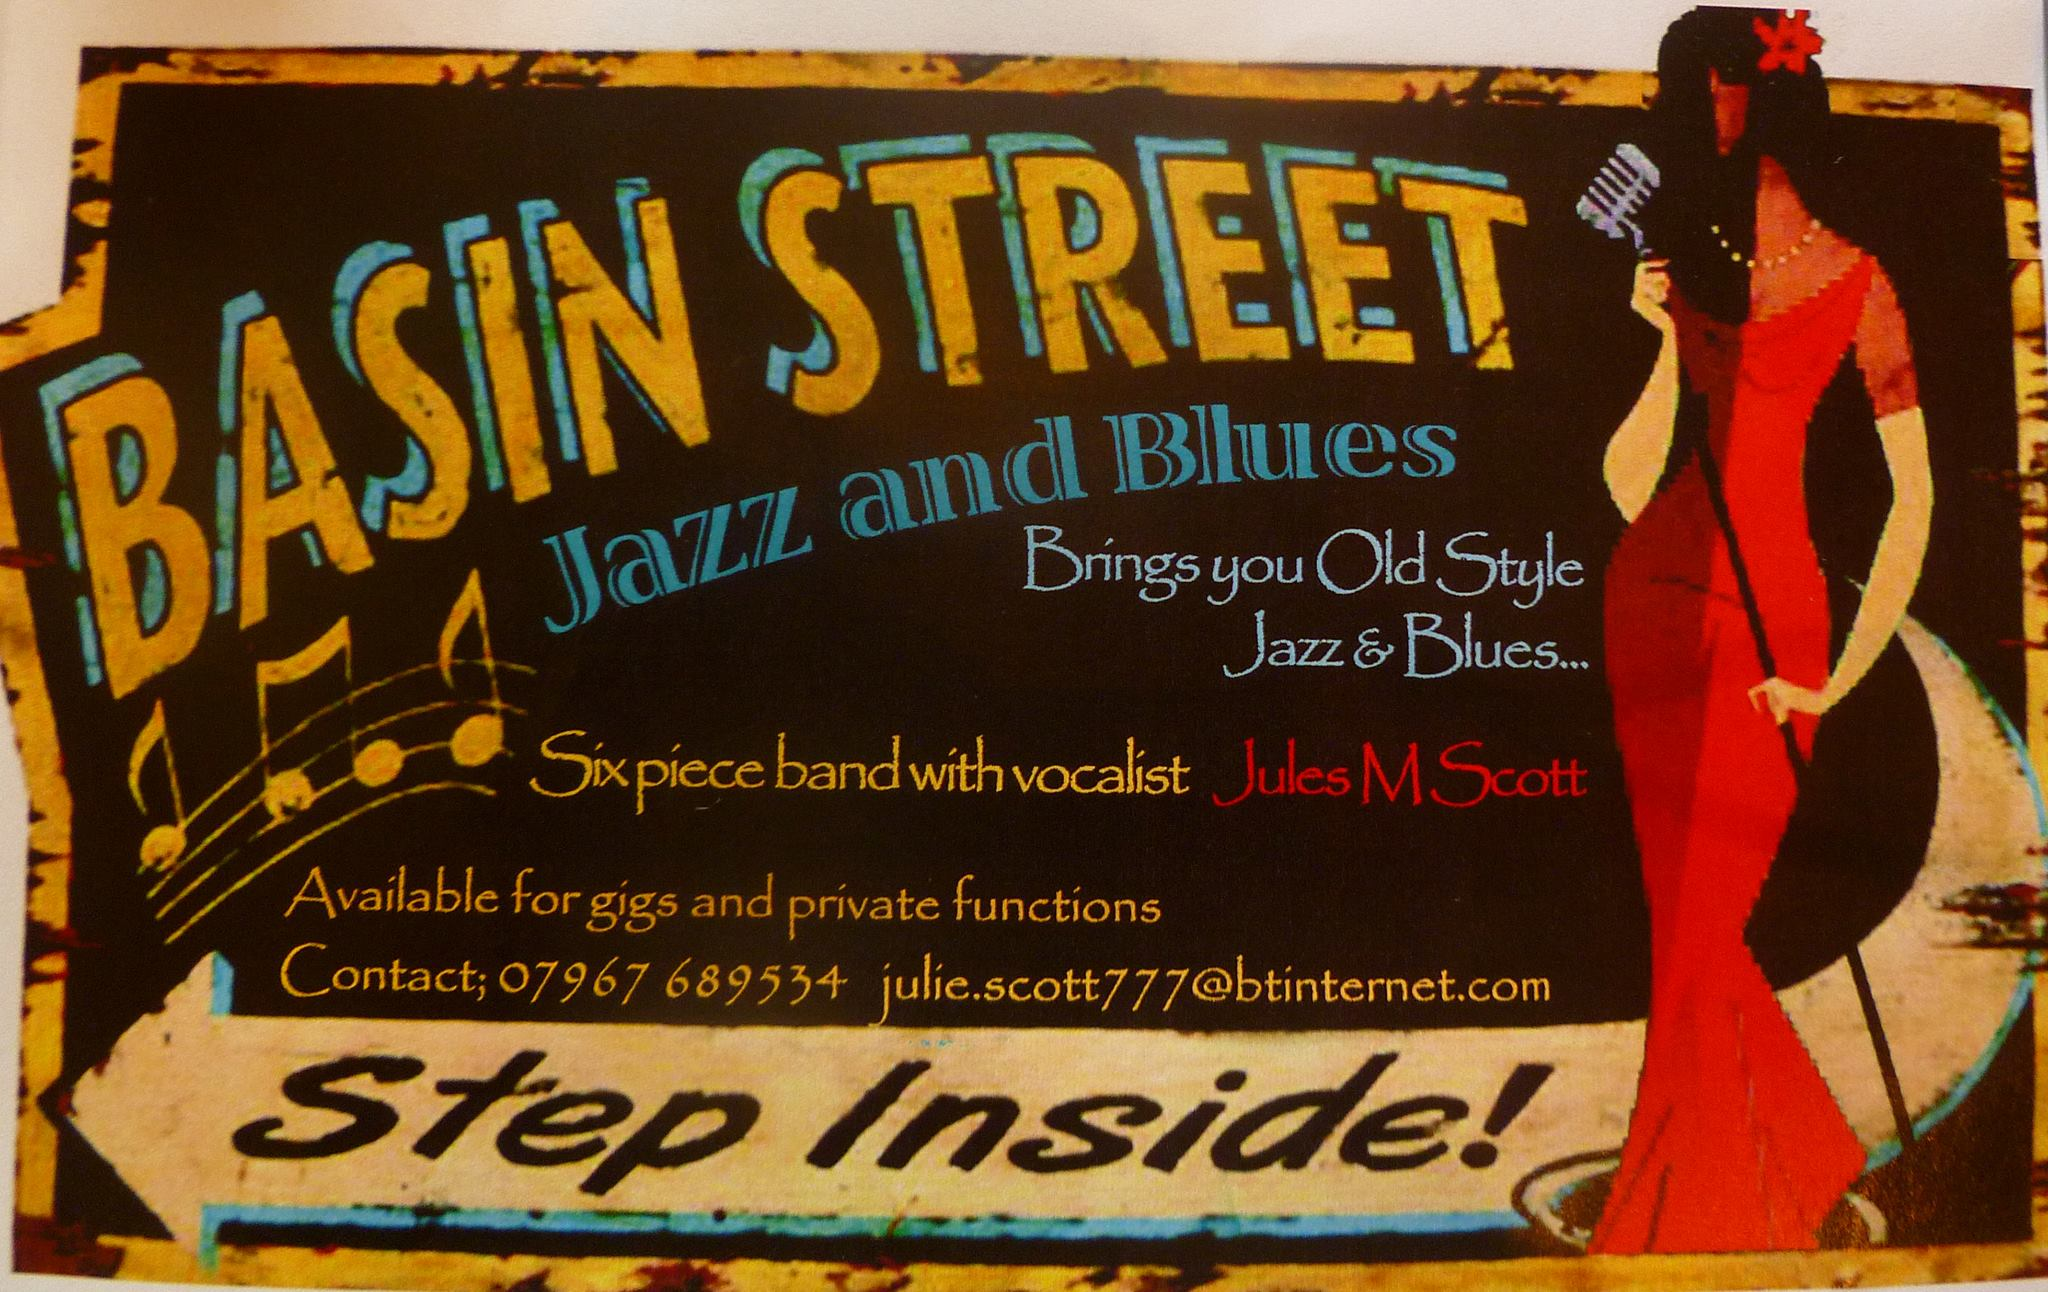 Basin Street Jazz and Blues Band Profile Pic